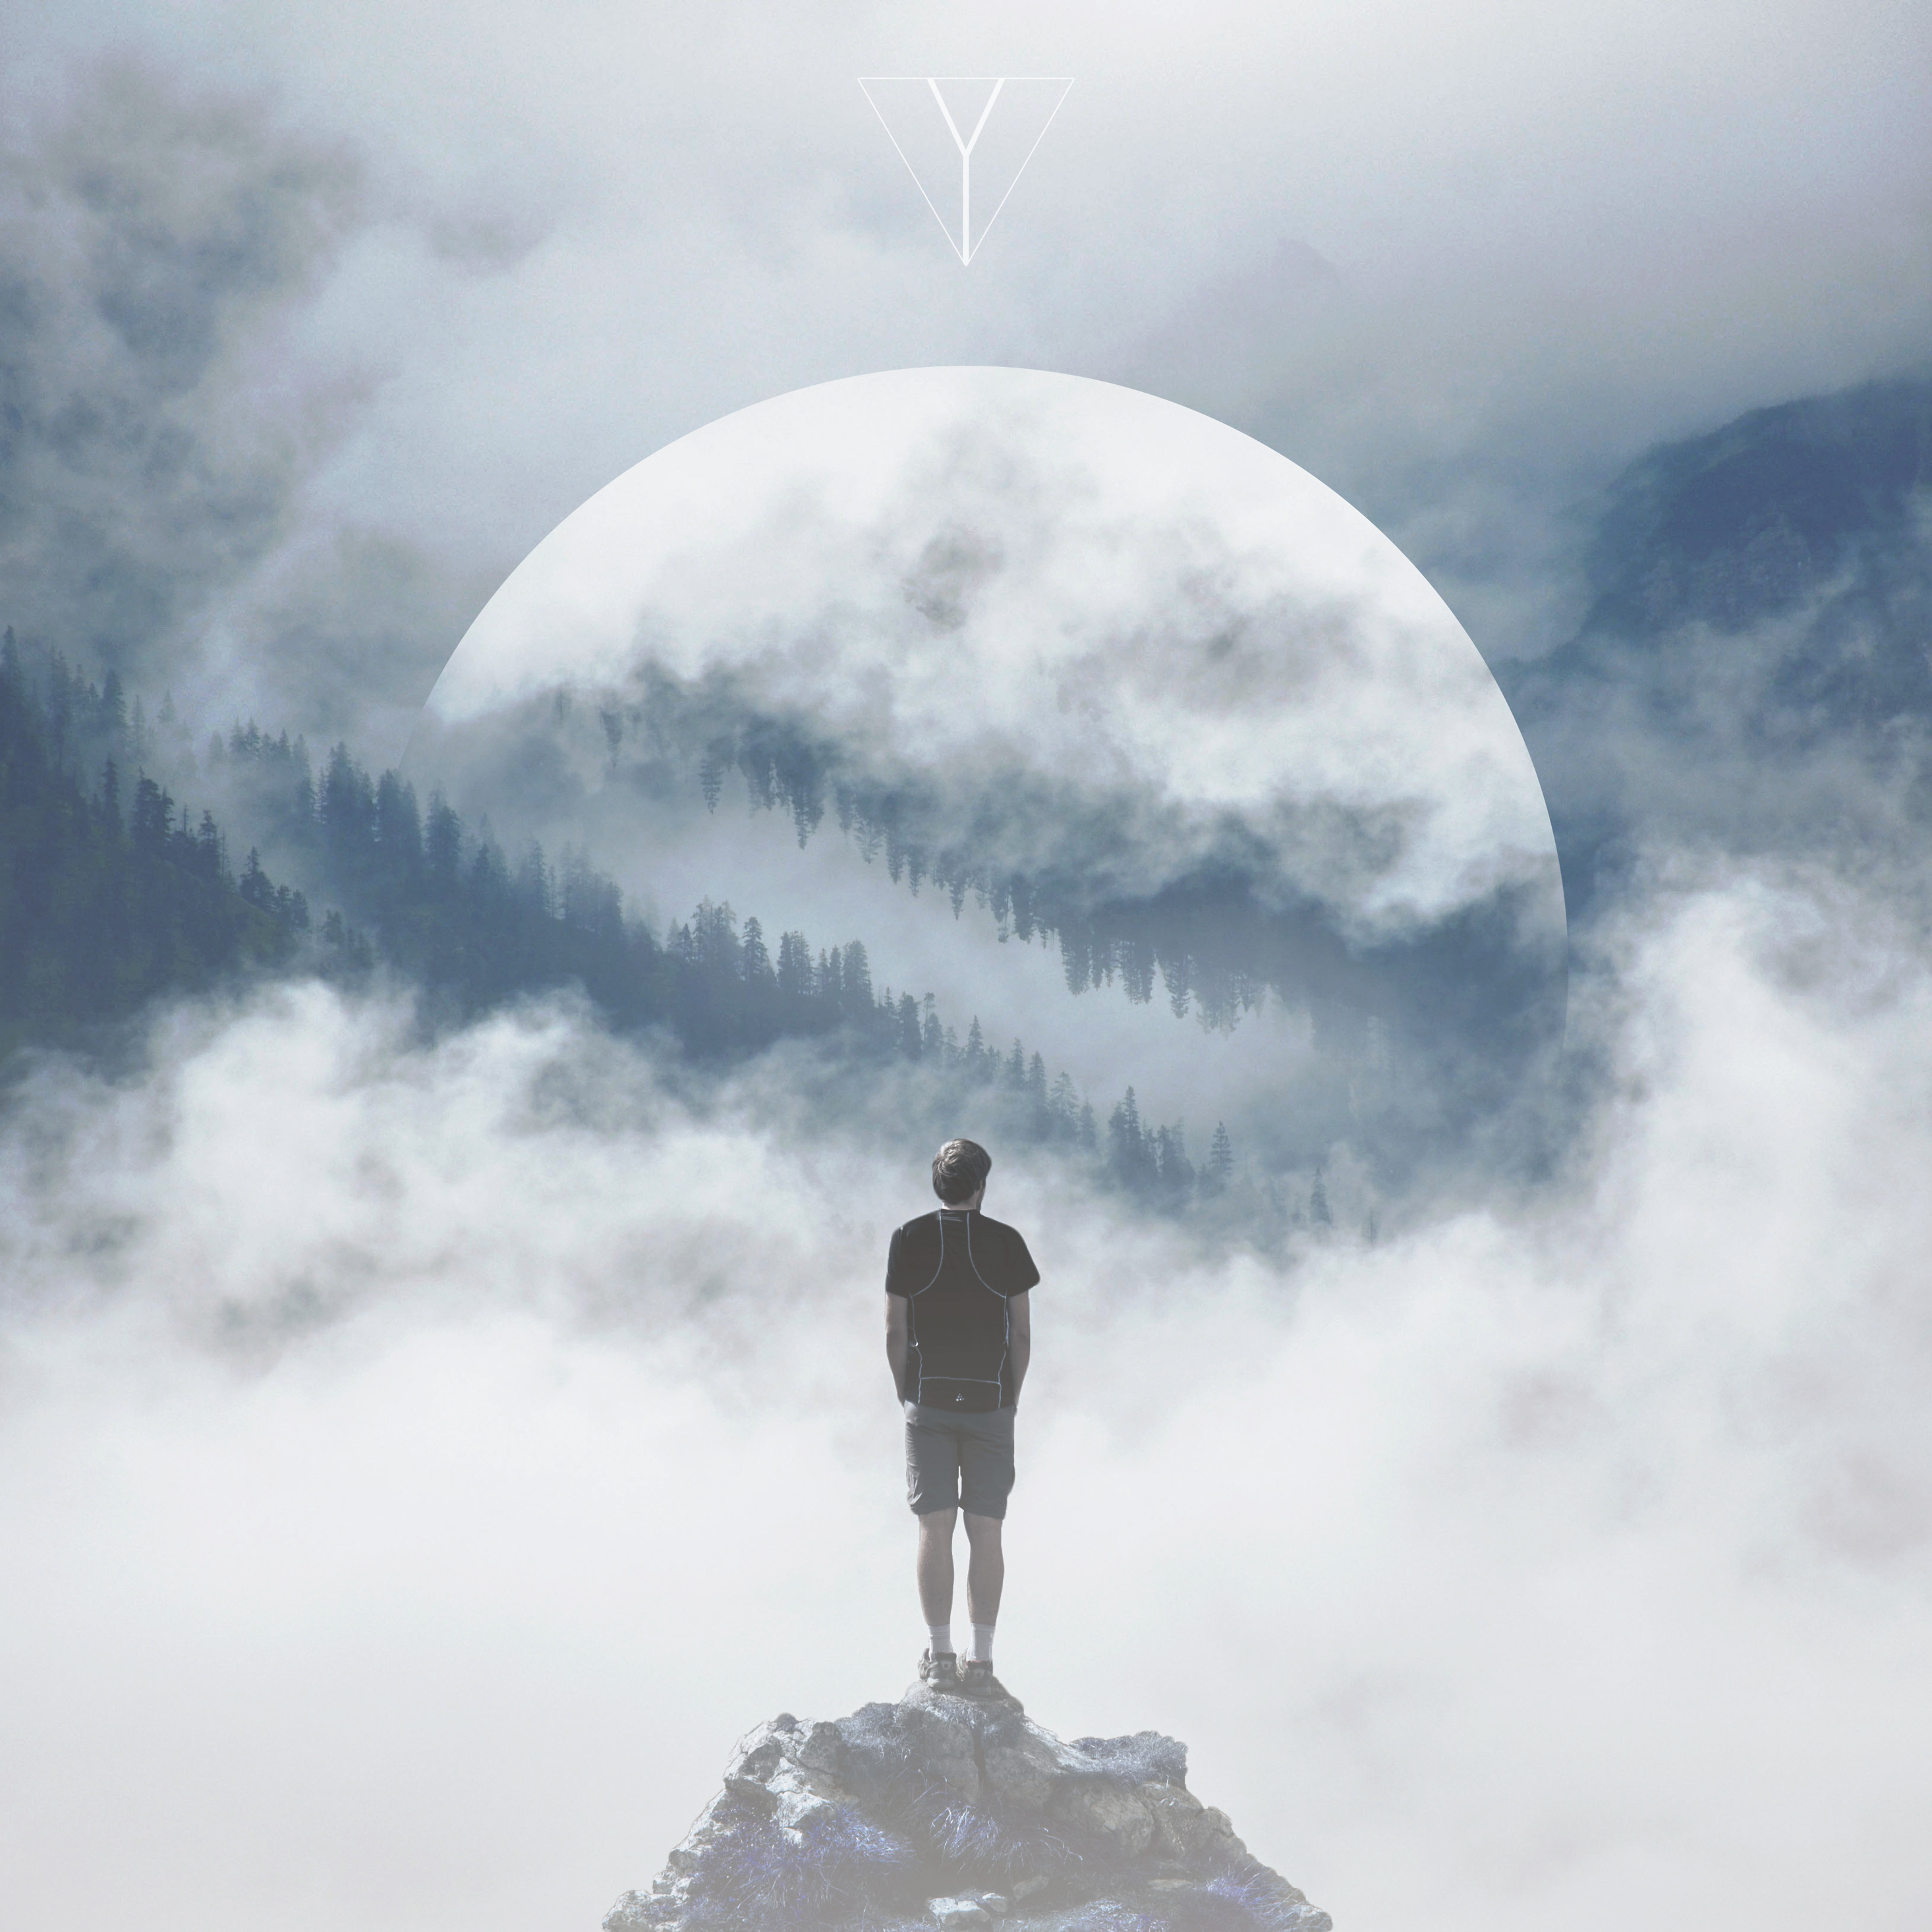 mountain-man-standing-on-rock-manipulation-photography-q6.jpg